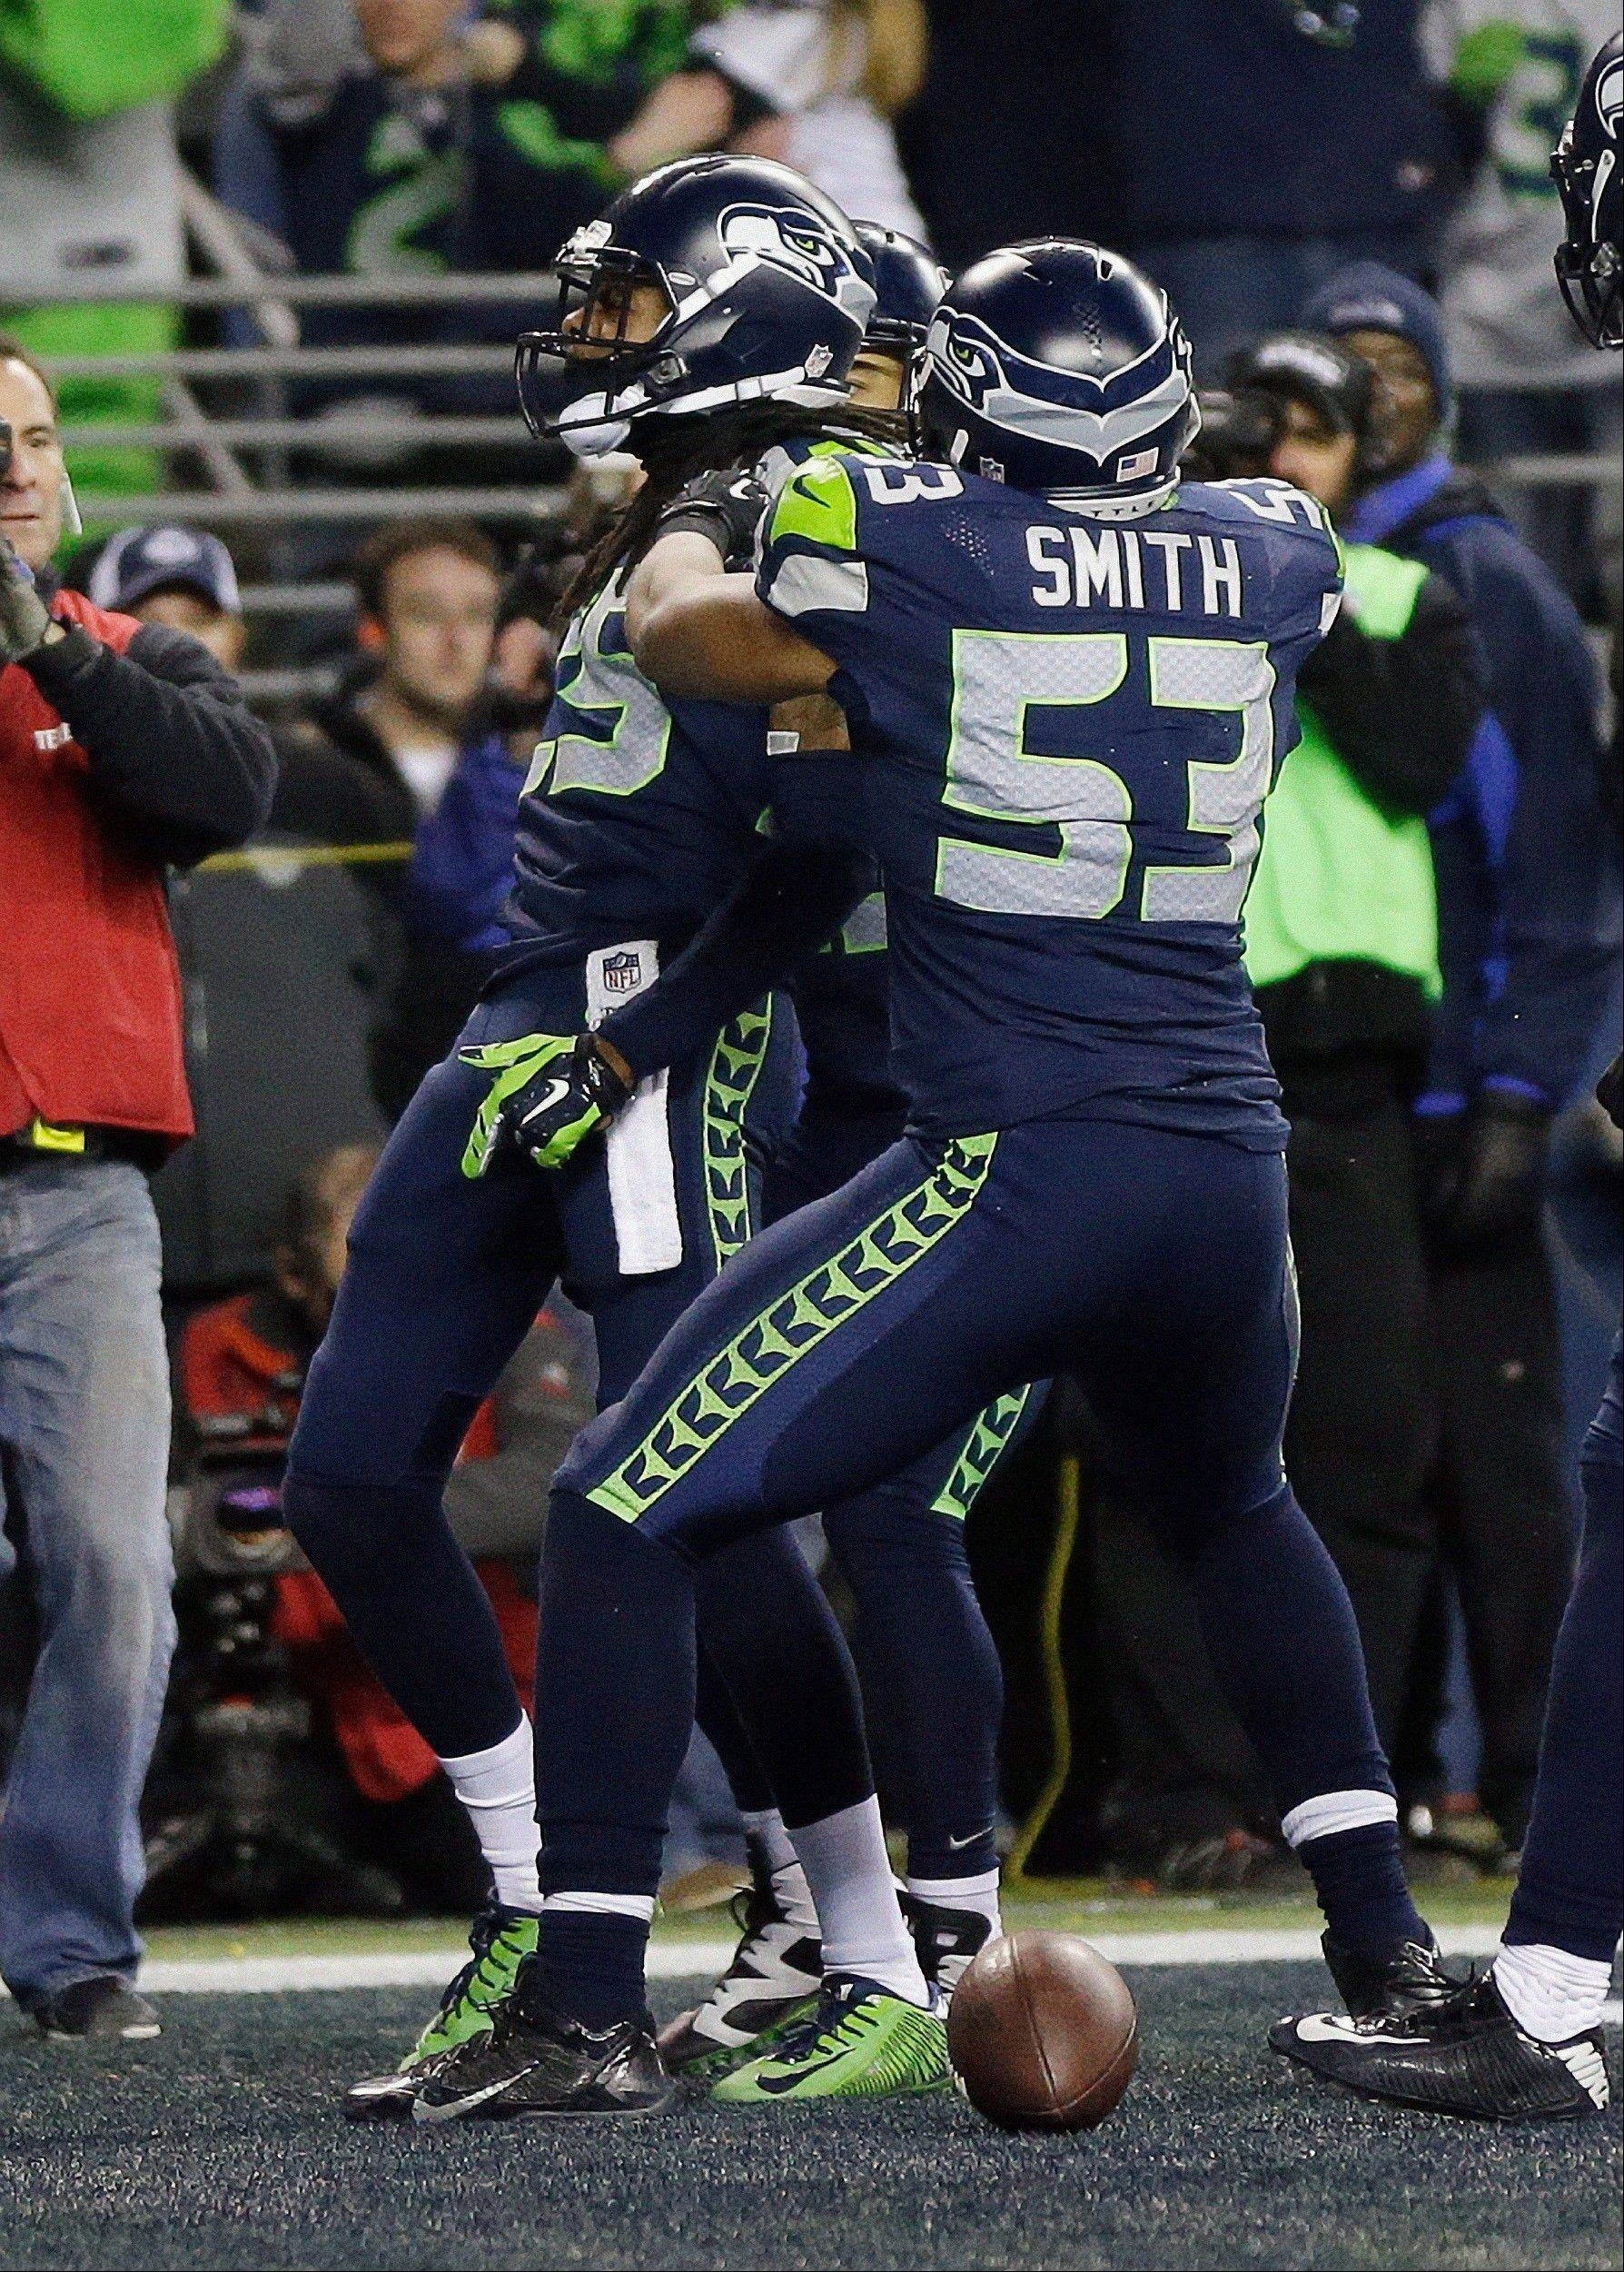 FILE - In this Sunday, Jan. 19, 2014 file photo, Seattle Seahawks' Richard Sherman reacts after tipping a pass intended for San Francisco 49ers' Michael Crabtree (15) in the final seconds of the second half of the NFL football NFC Championship game Sunday, Jan. 19, 2014, in Seattle. Seattle Seahawks cornerback Richard Sherman was fined $7,875 for unsportsmanlike conduct/taunting in the final minute of the NFC championship game against San Francisco, Friday, Jan. 24, 2014.